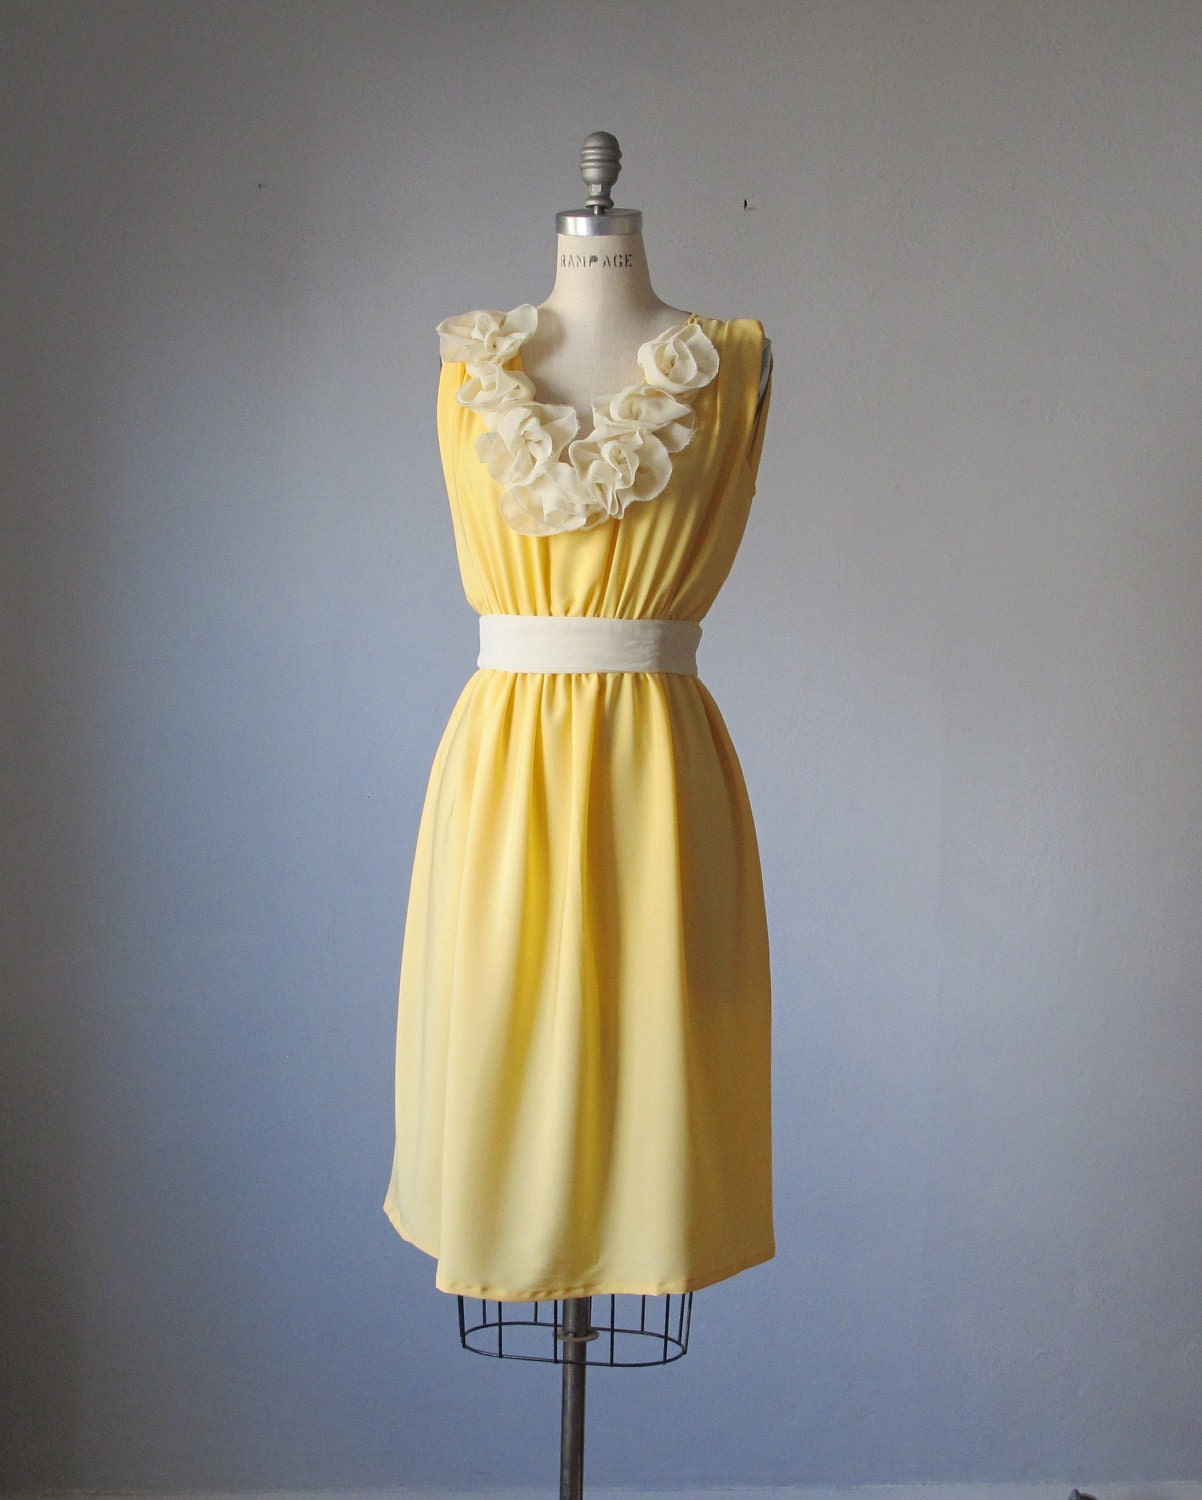 Dress / Bridesmaid / Romantic / Yellow / Dreamy / Bridesmaid / Party / Ruffles Flowers / Ready to ship